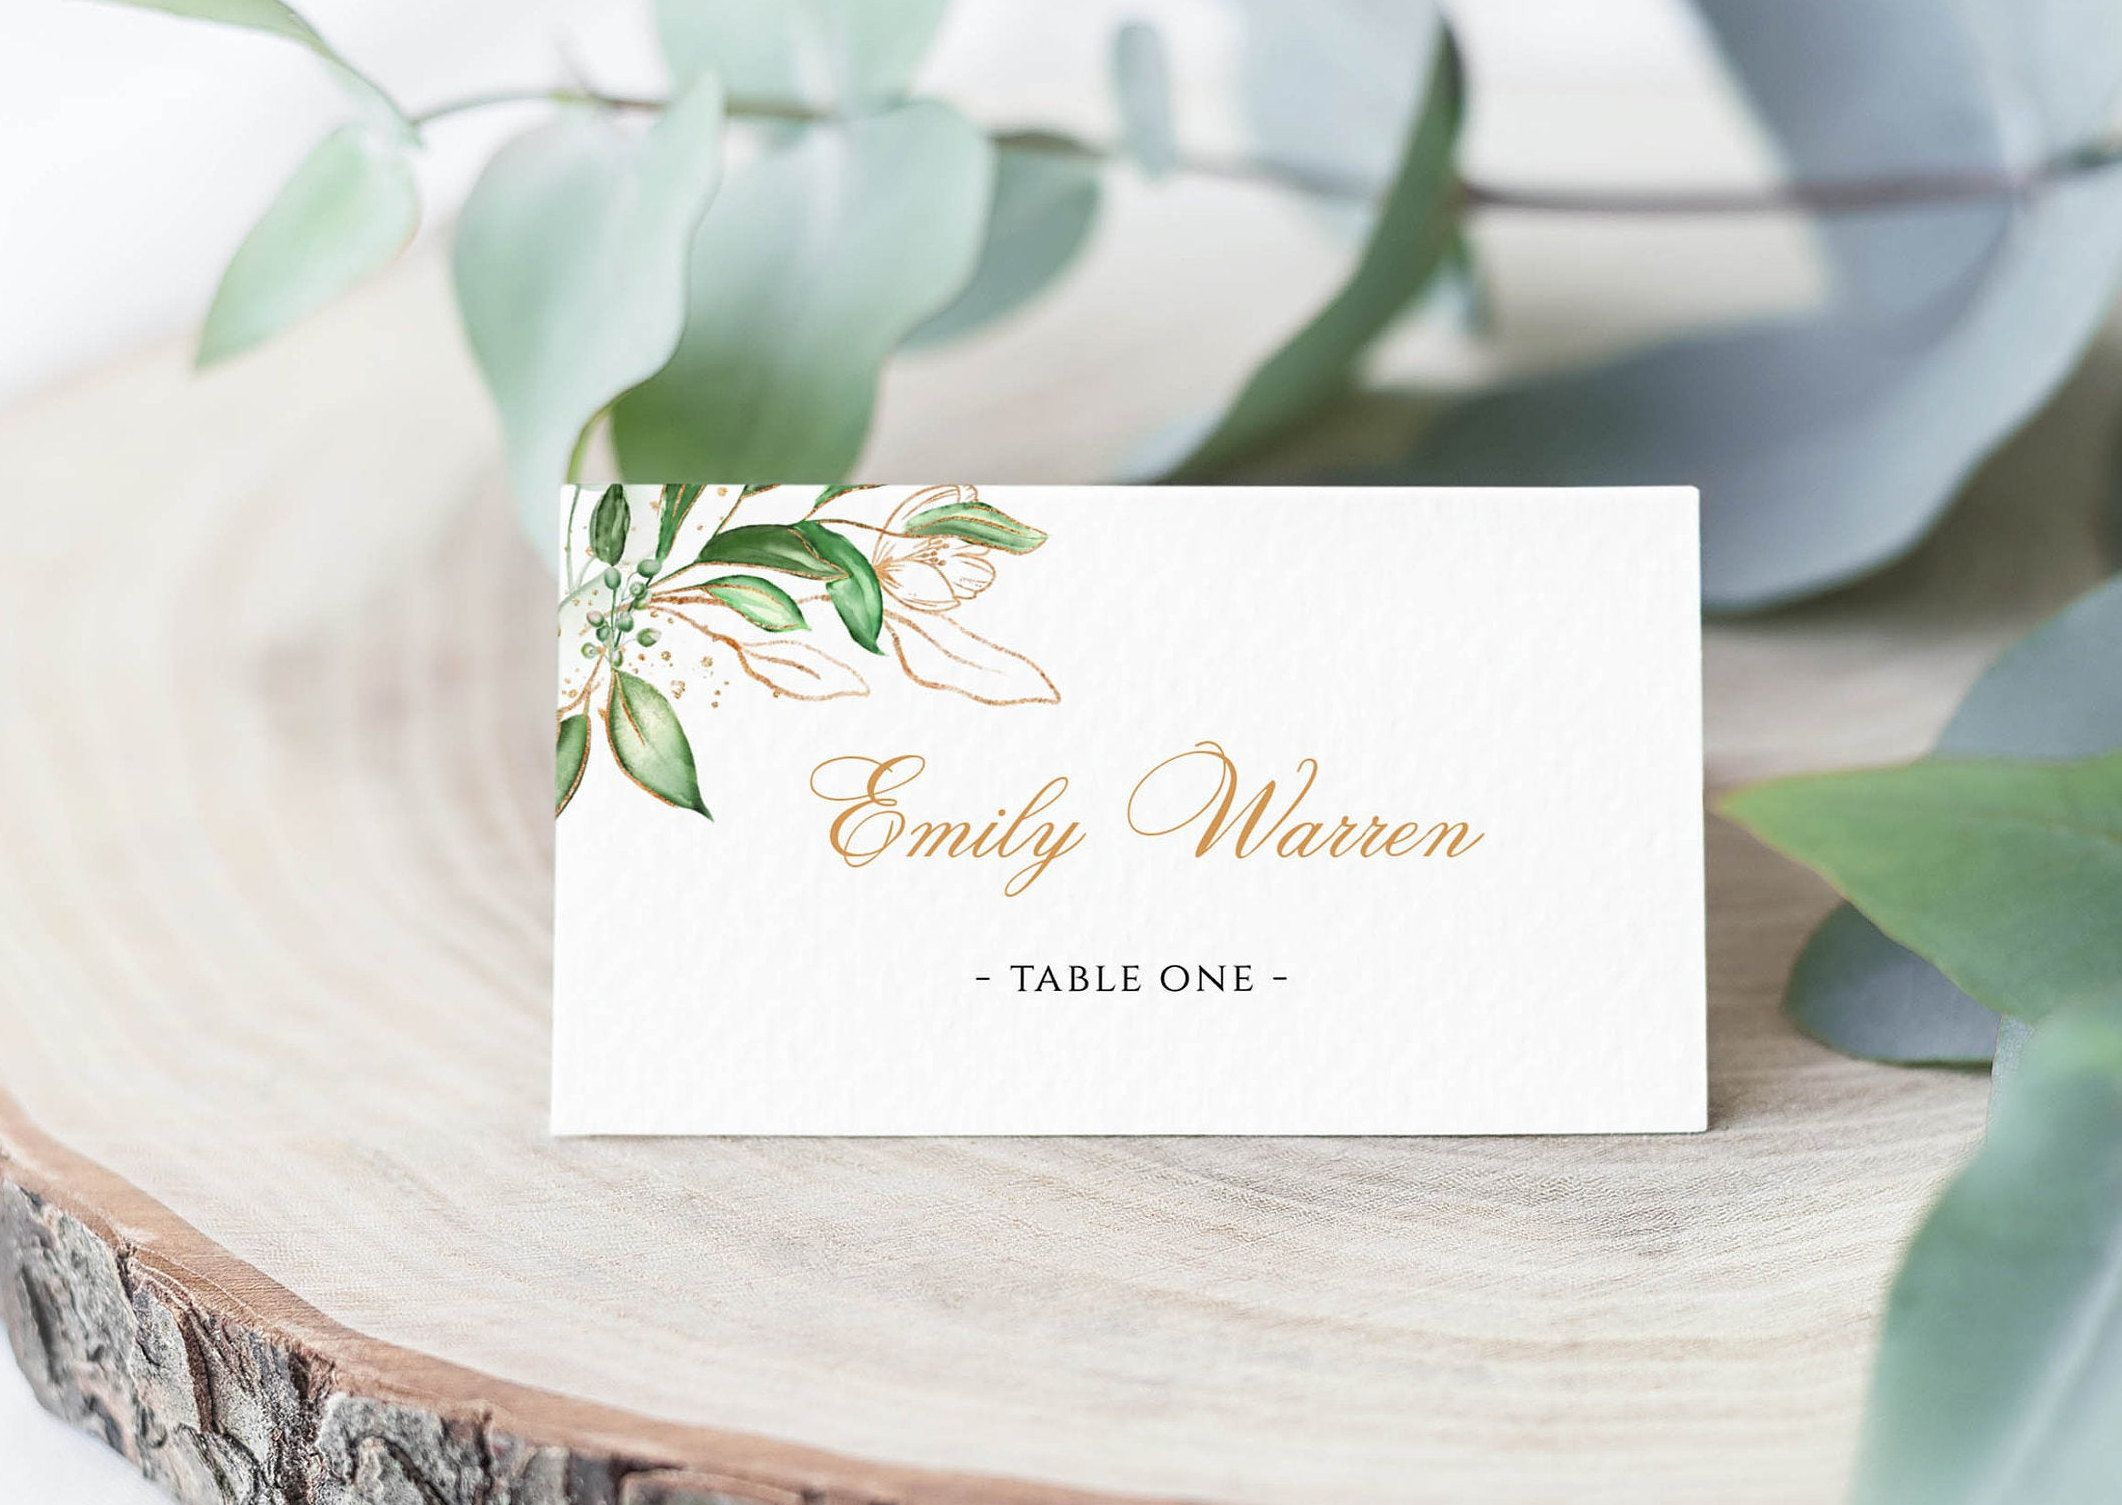 Greenery Wedding Place Card Flat And Tent Place Card Template Table Seating Card Foliage Green Leaves Wedding Place Cards Place Card Template Seating Cards